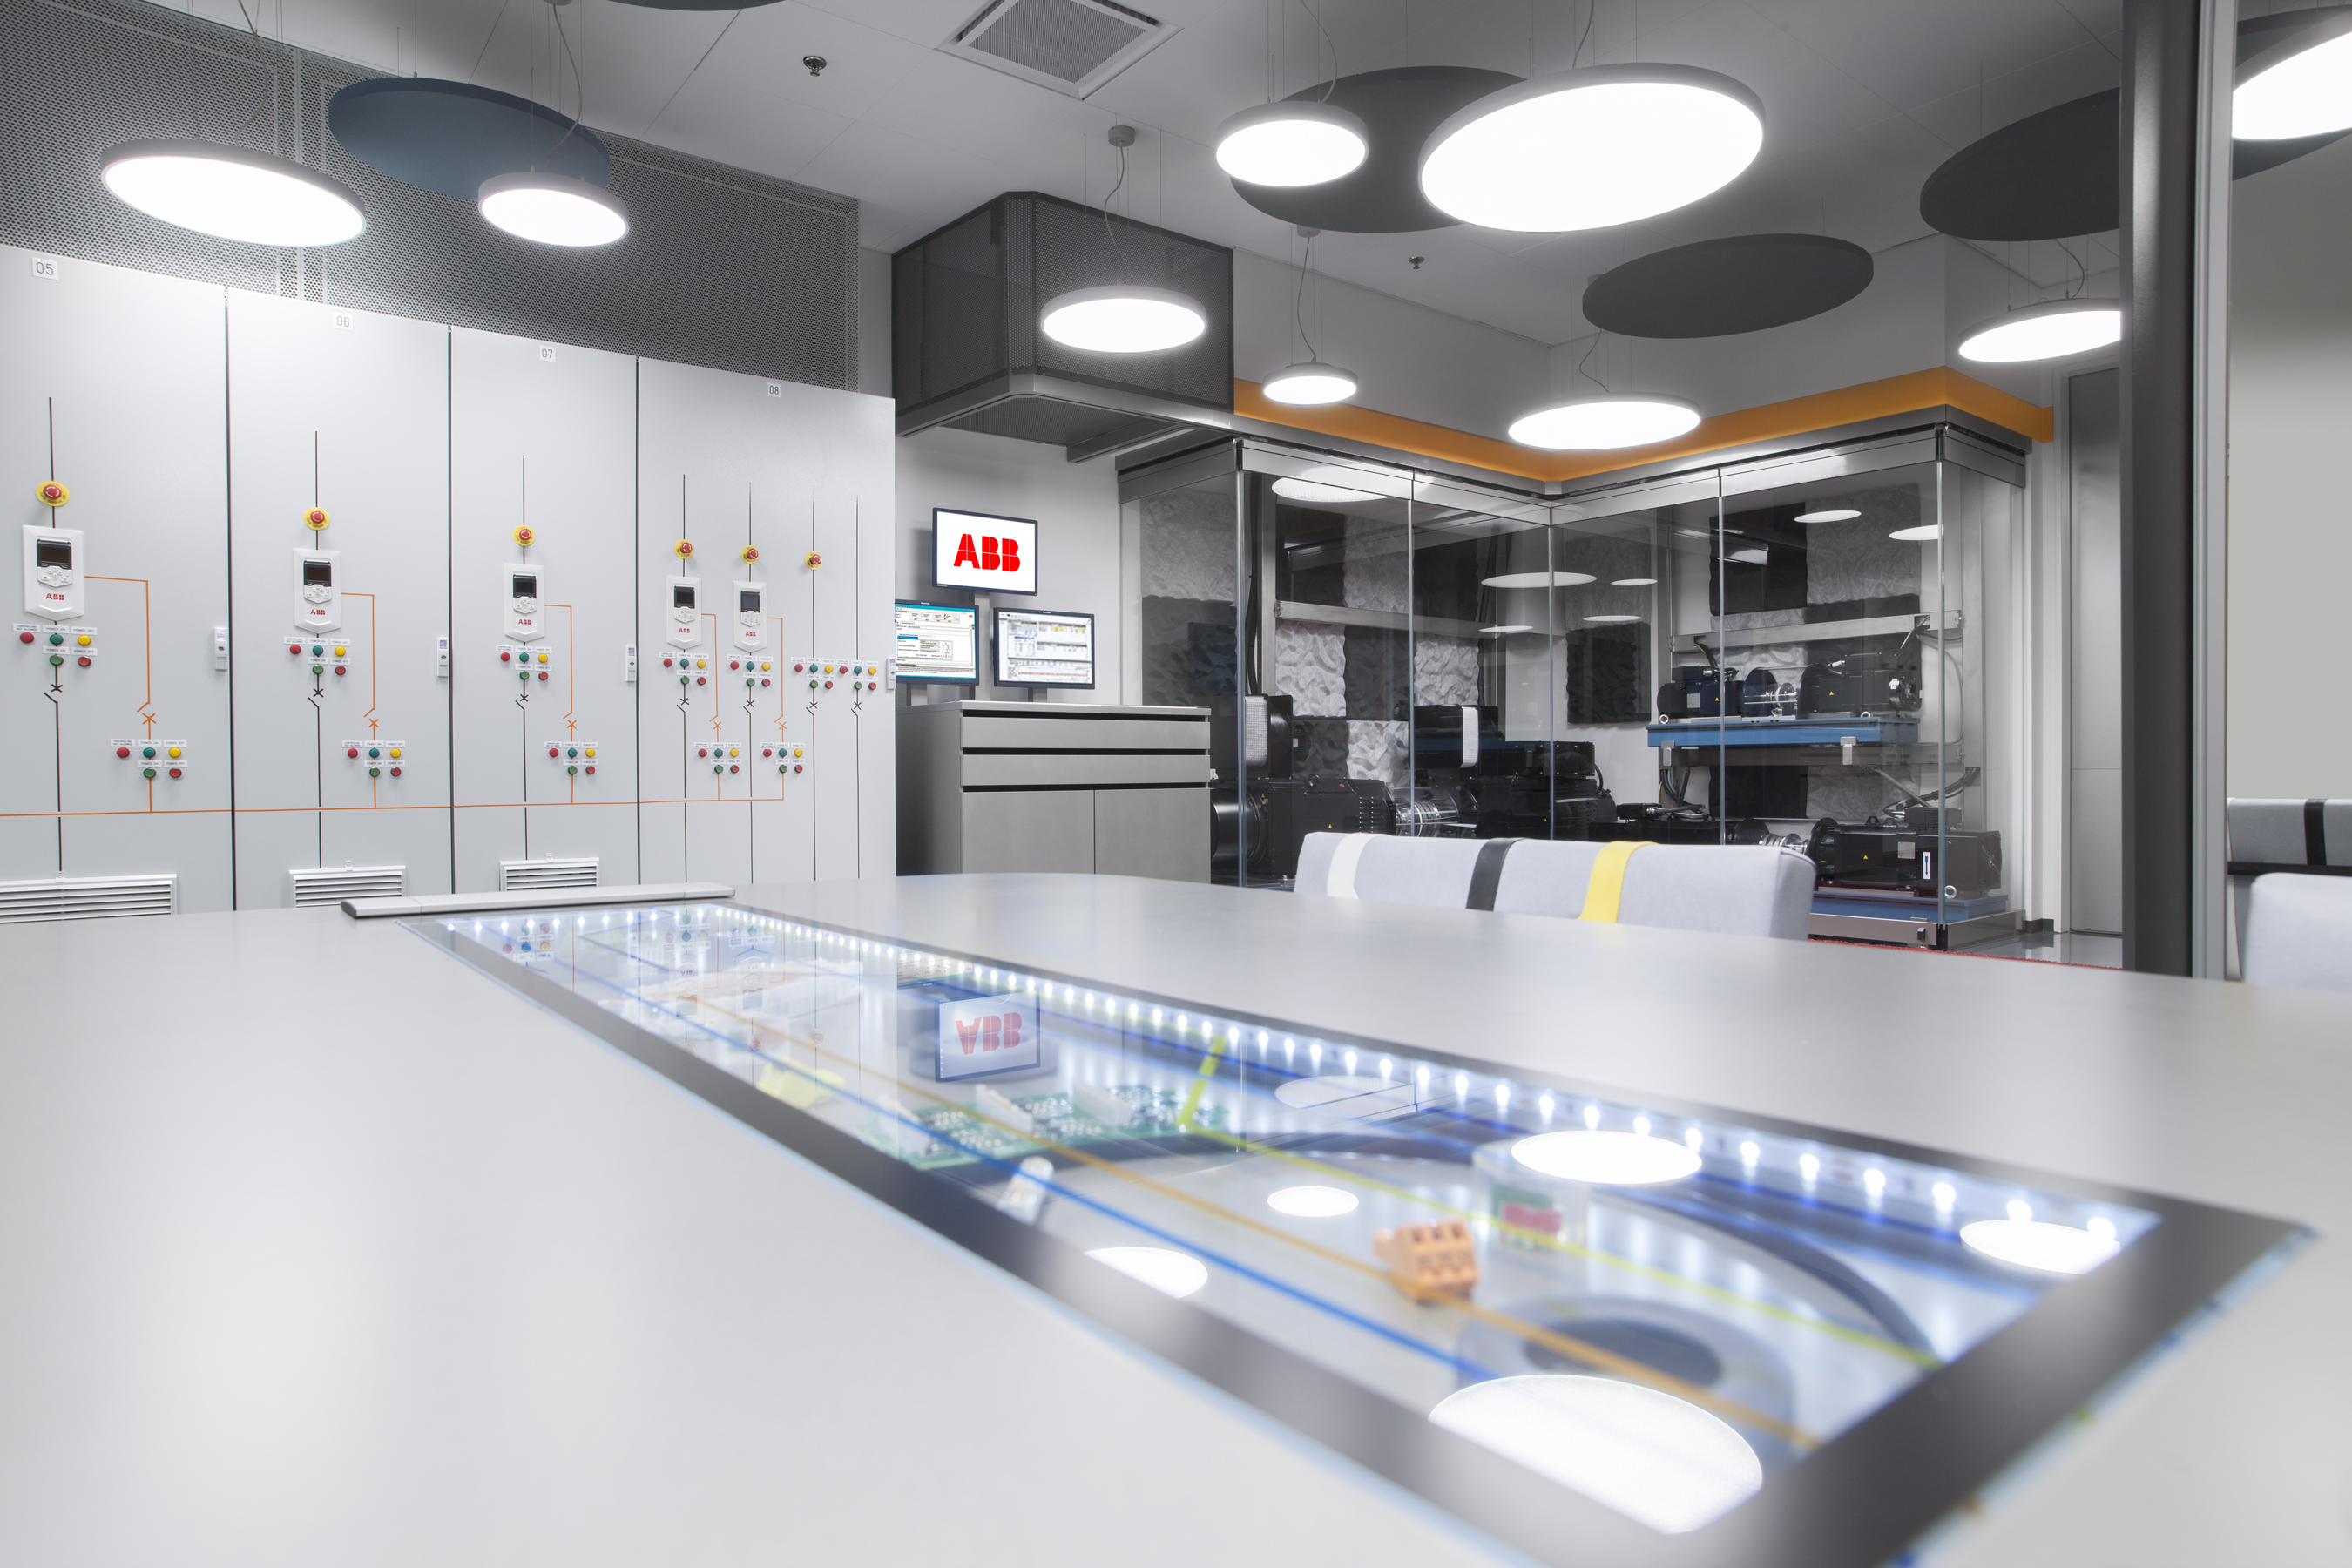 ABB's new customer drives test laboratory